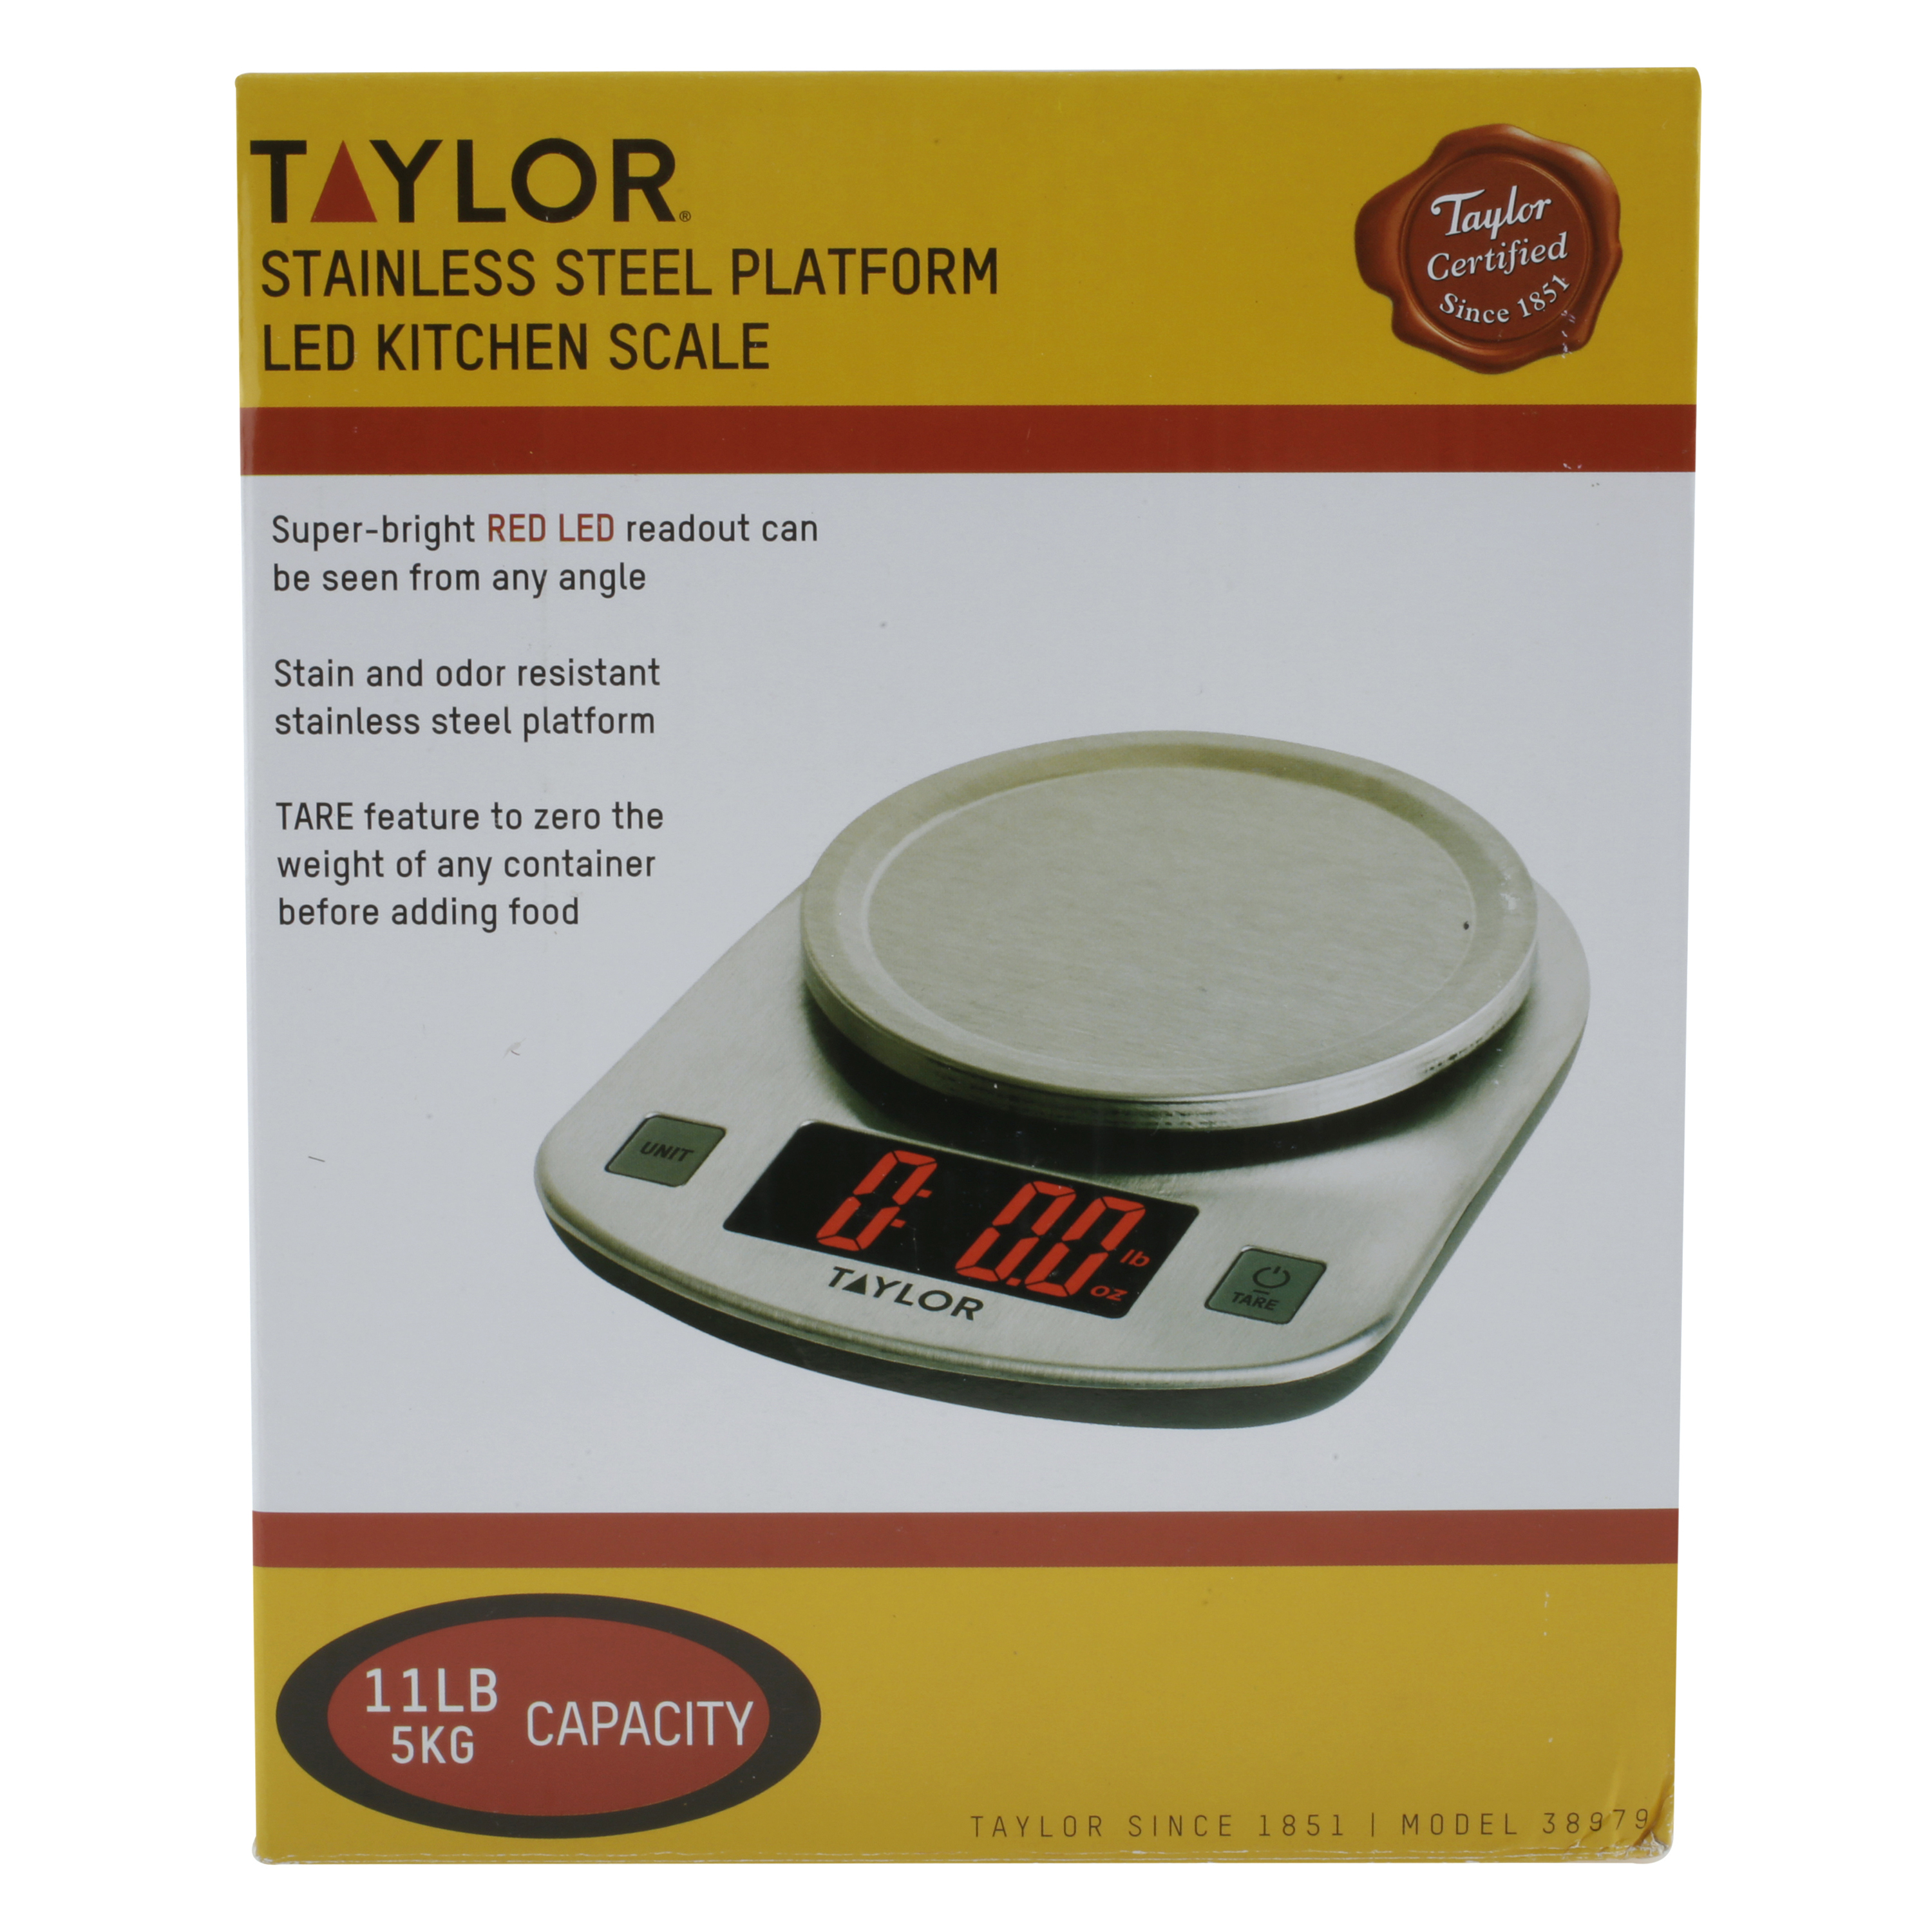 Taylor, Stainless Steel, LED Kitchen Scale, 11 LB Capacity